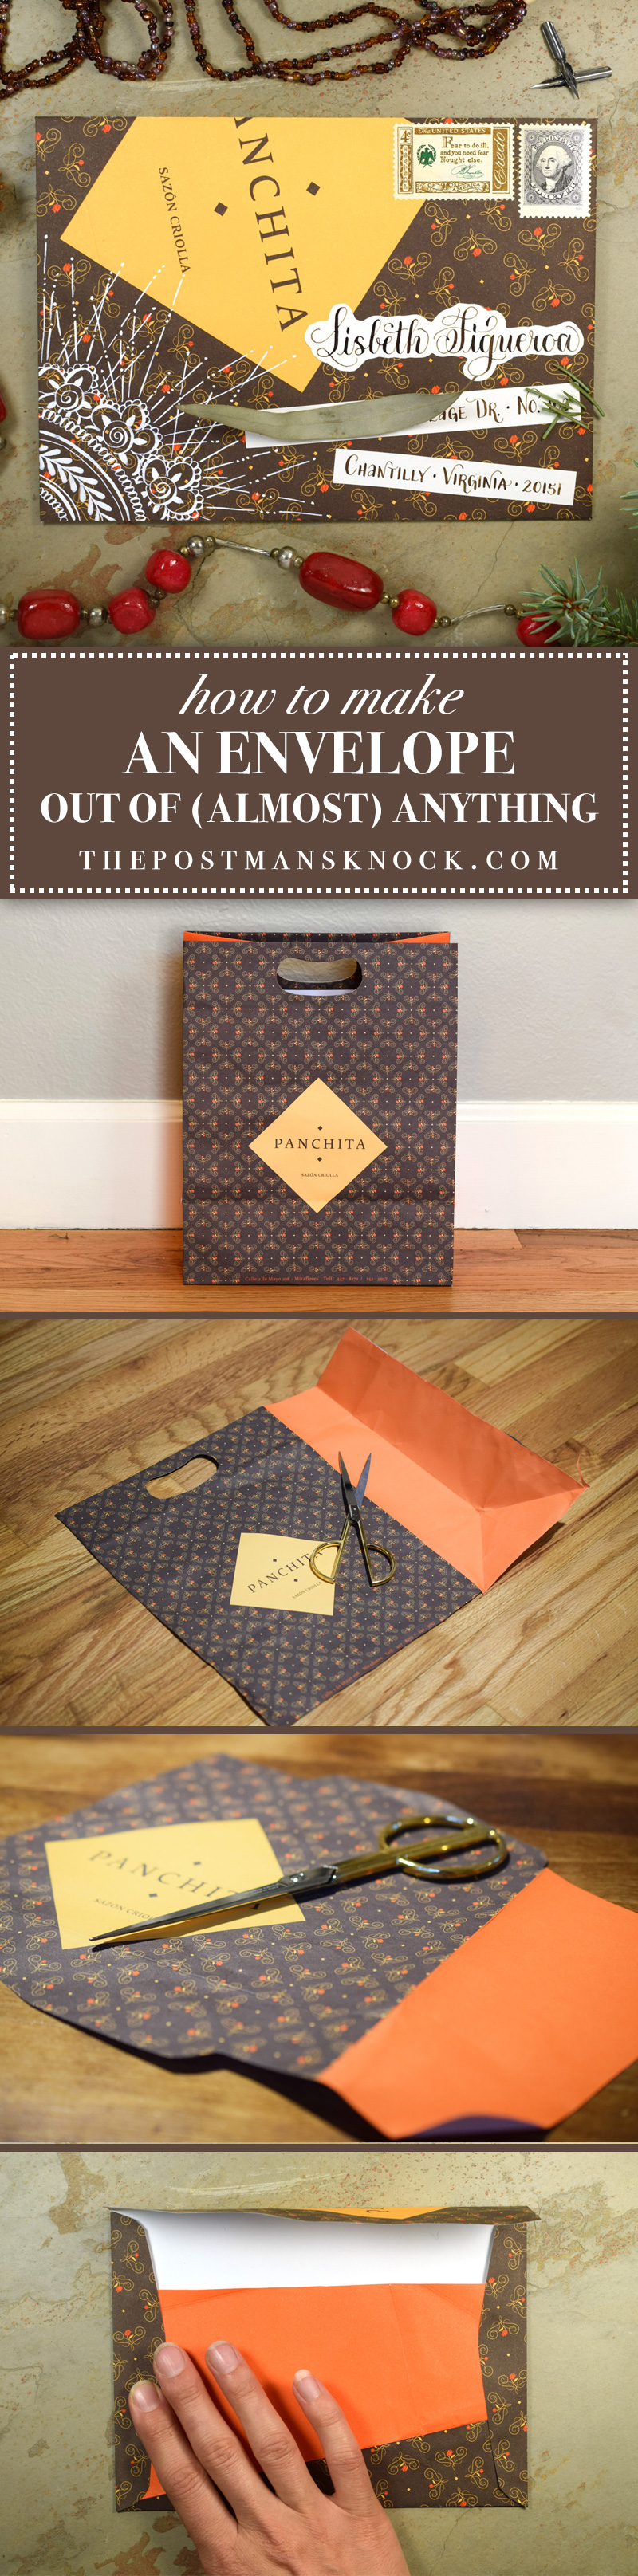 How to Make an Envelope Out of (Almost) Anything   The Postman's Knock